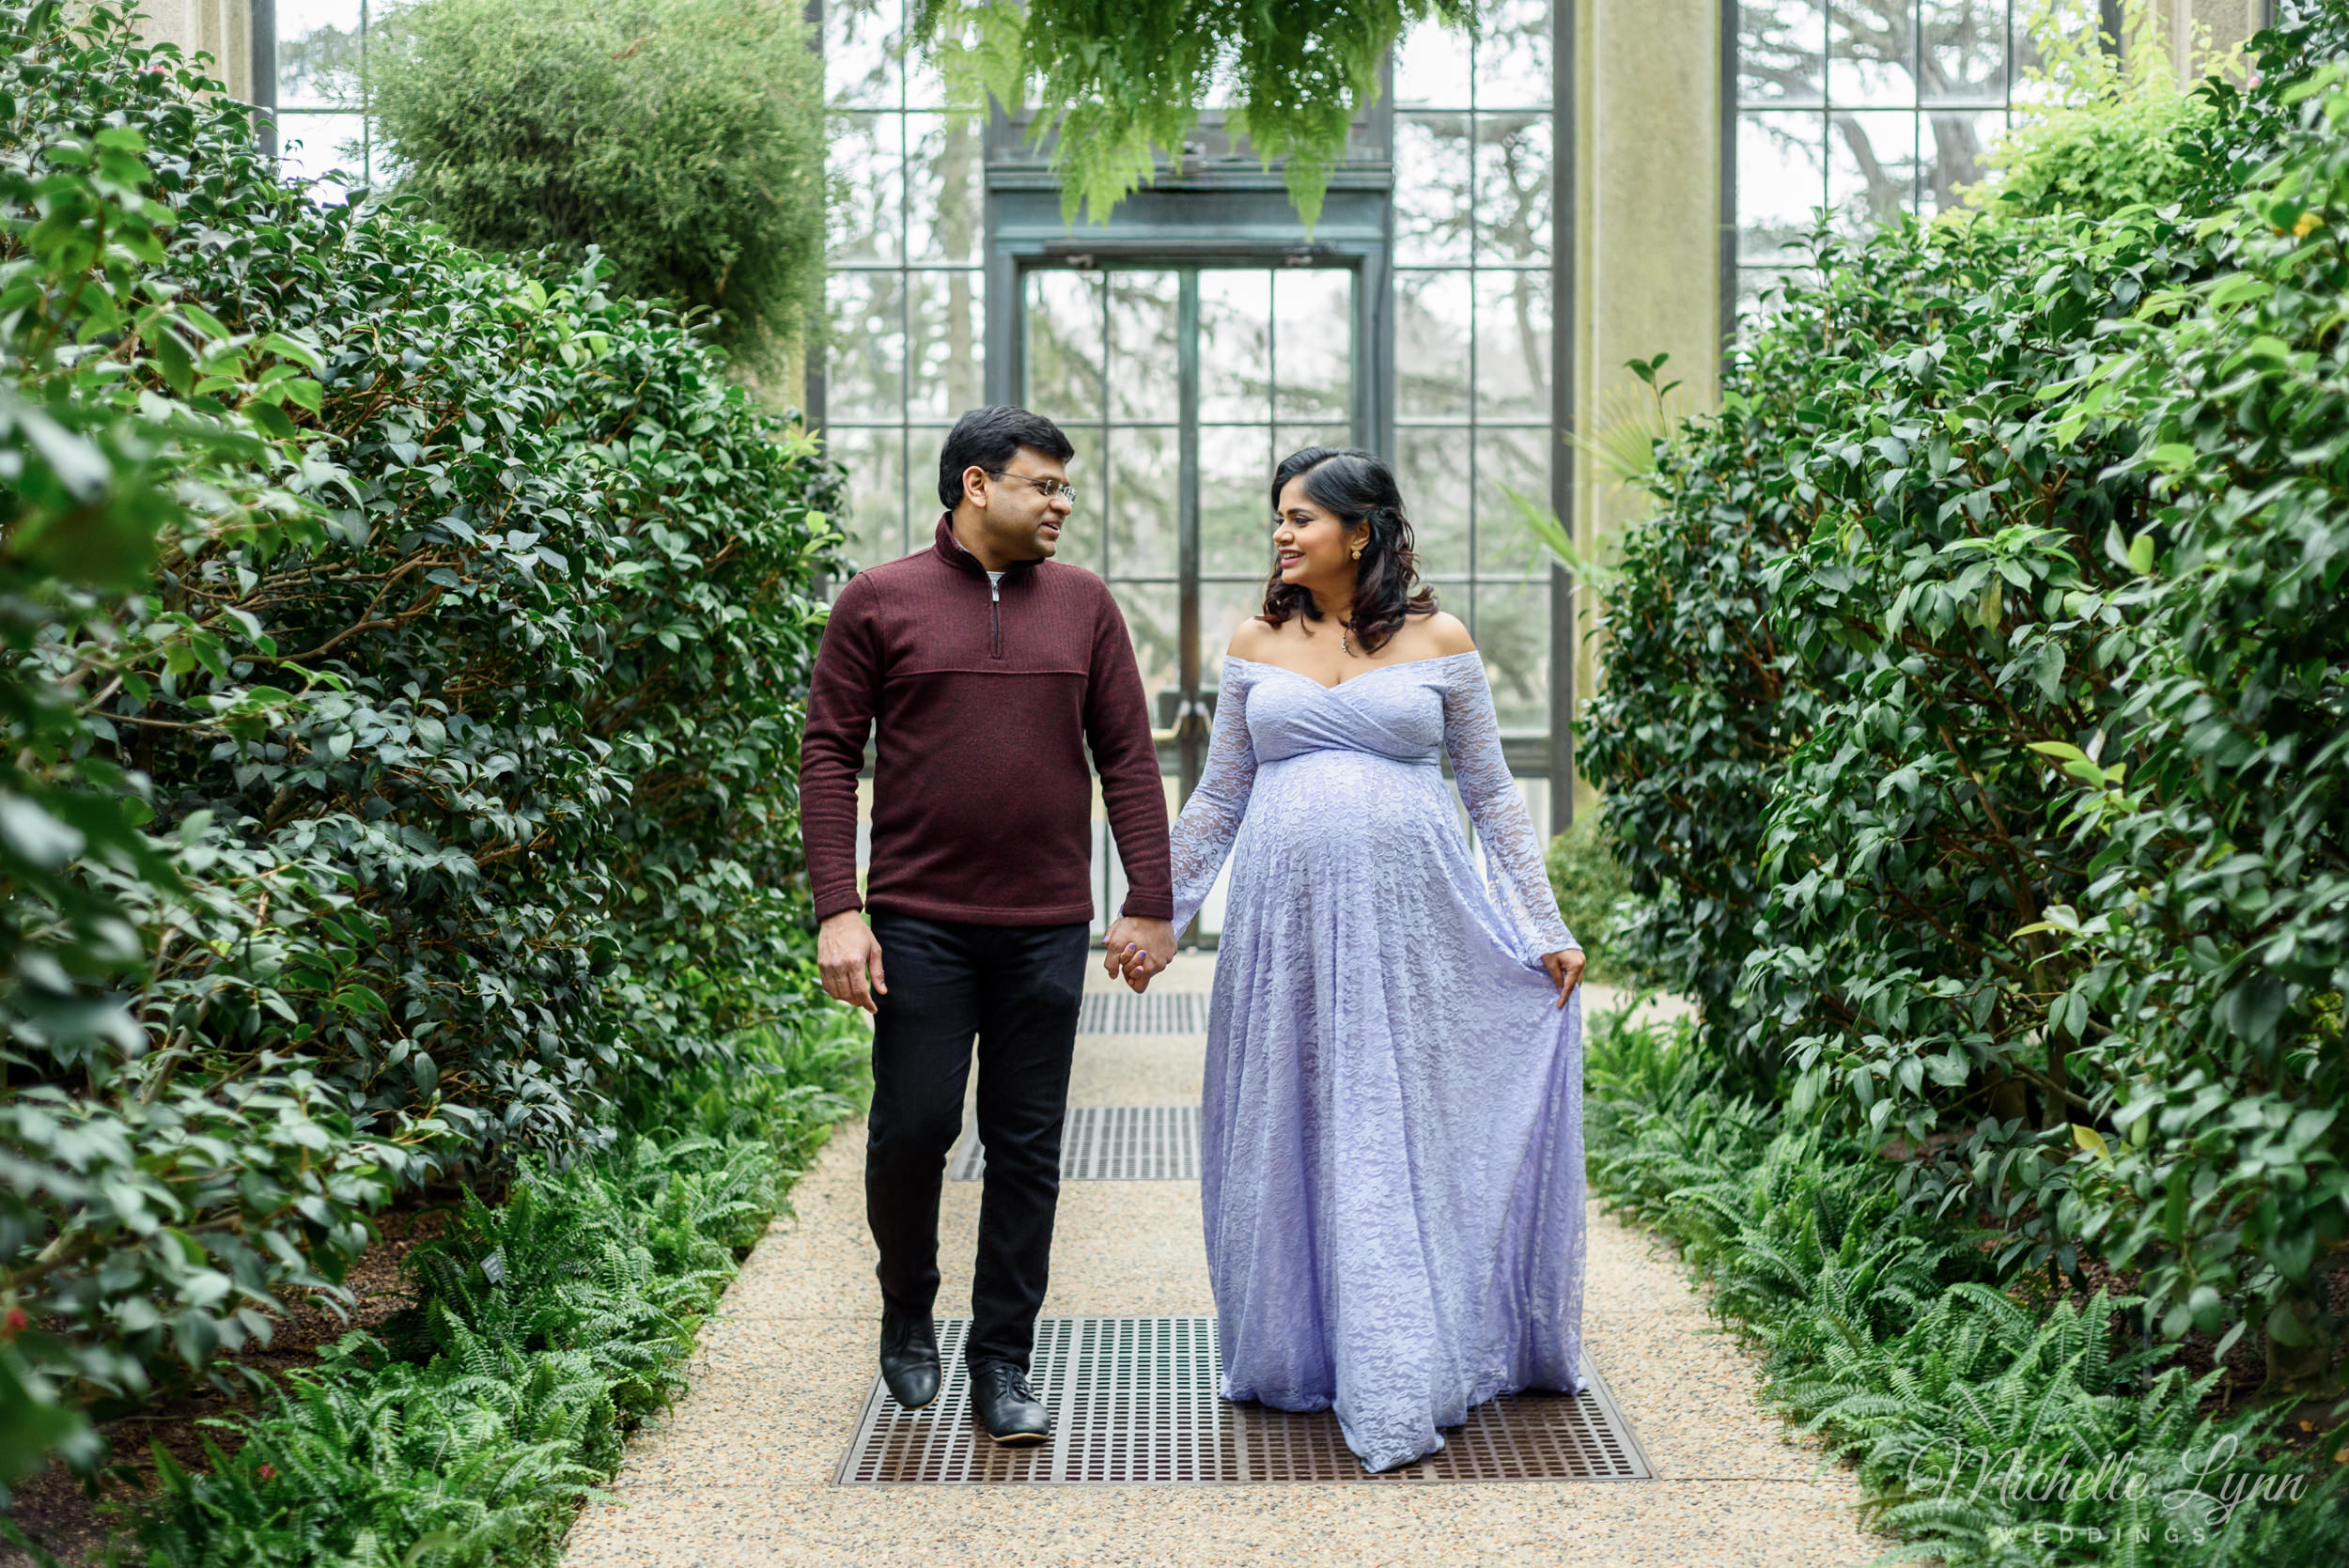 mlw-longwood-gardens-maternity-photos-27.jpg